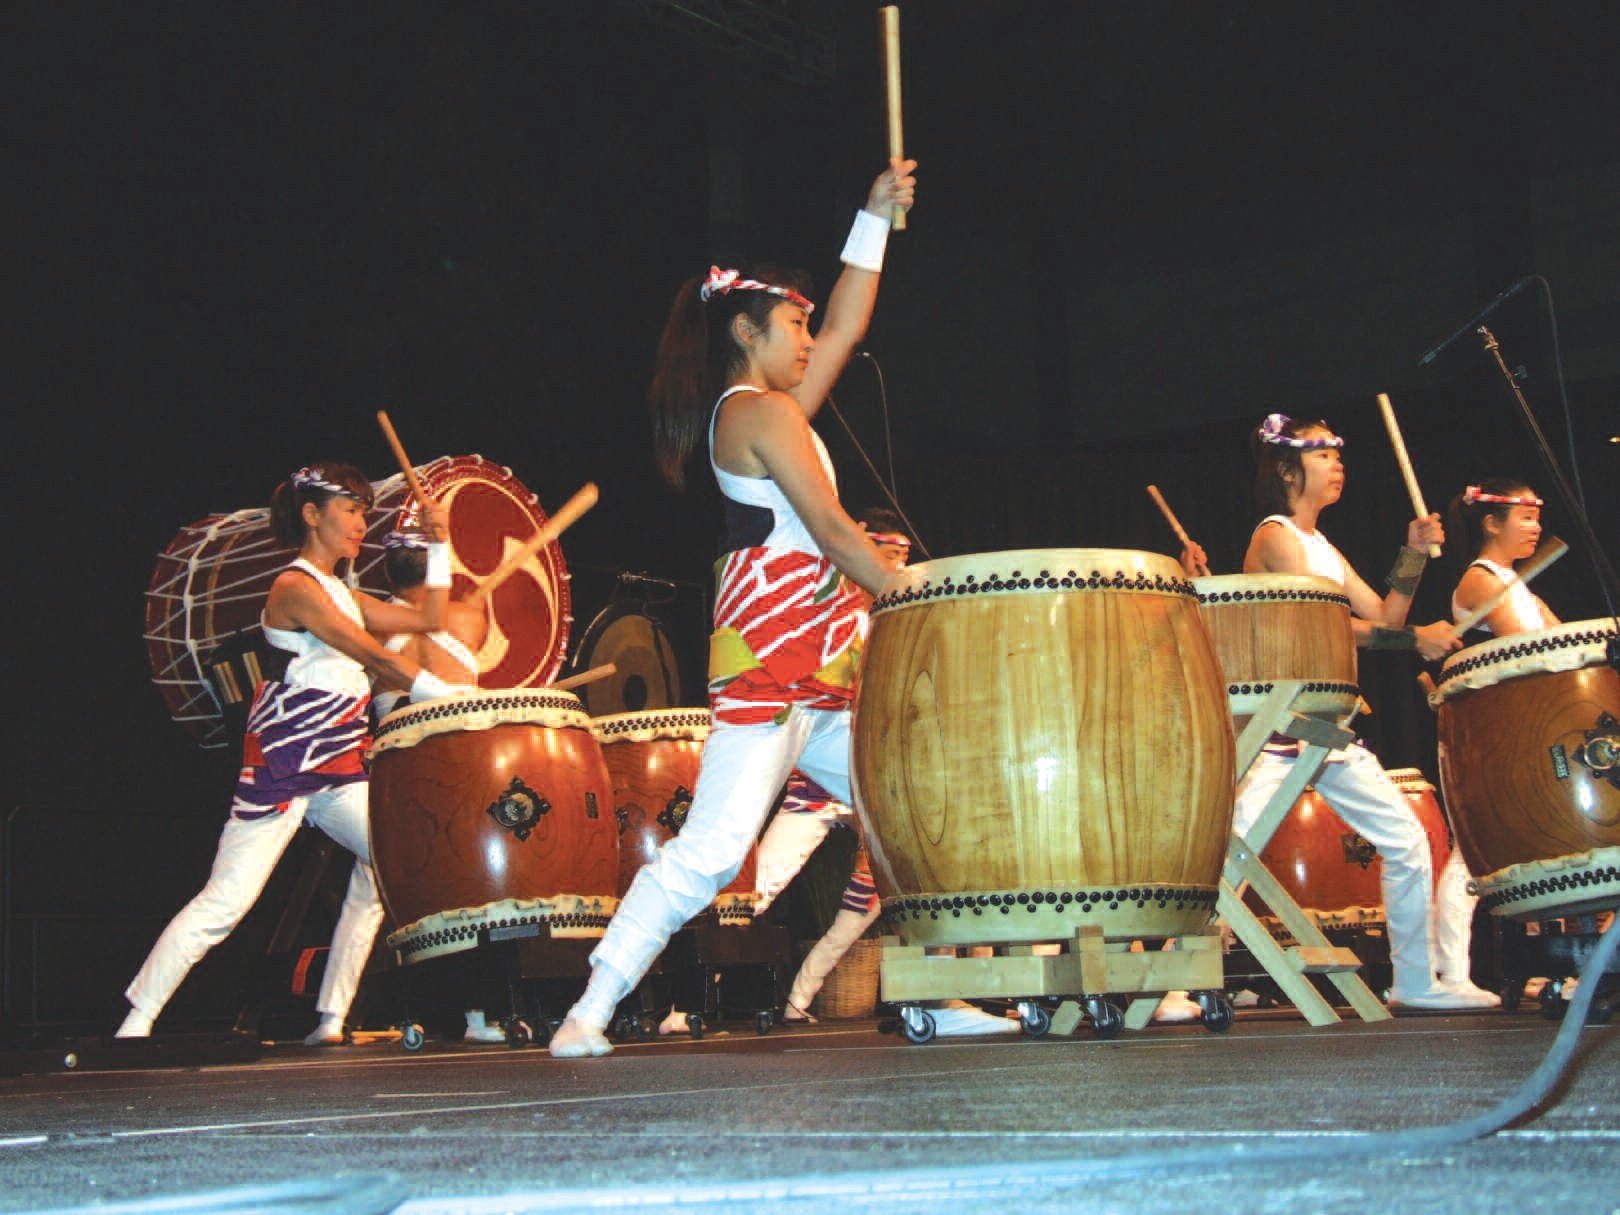 The Matsuriza Taiko Drummers of Japan pictured at past Savannah Asian Festival